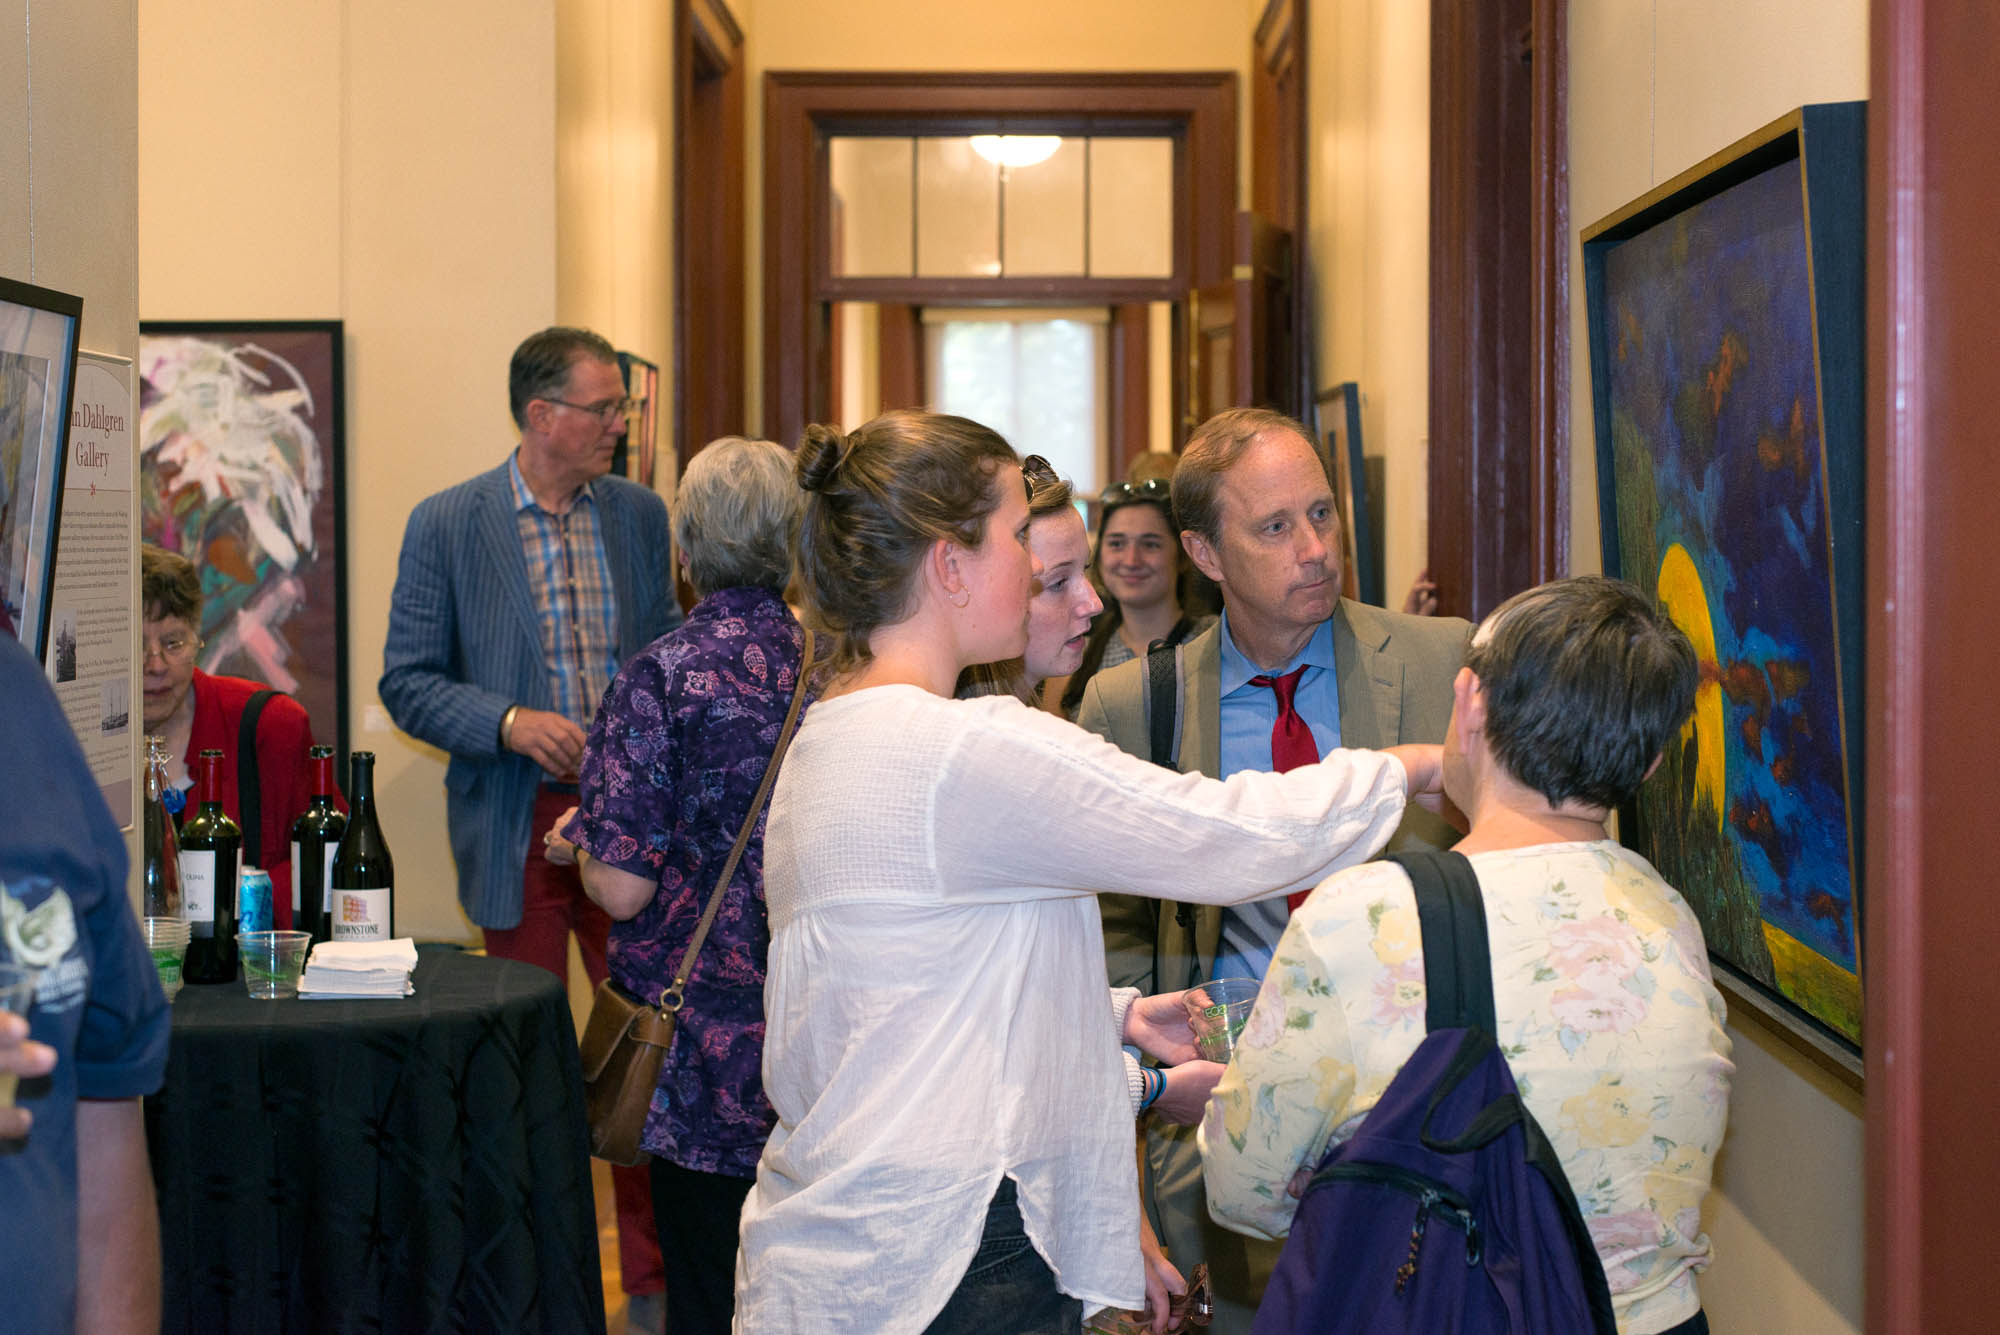 attendees-enjoy-the-opening-reception-of-the-hill-center-galleries-regional-juried-exhibition